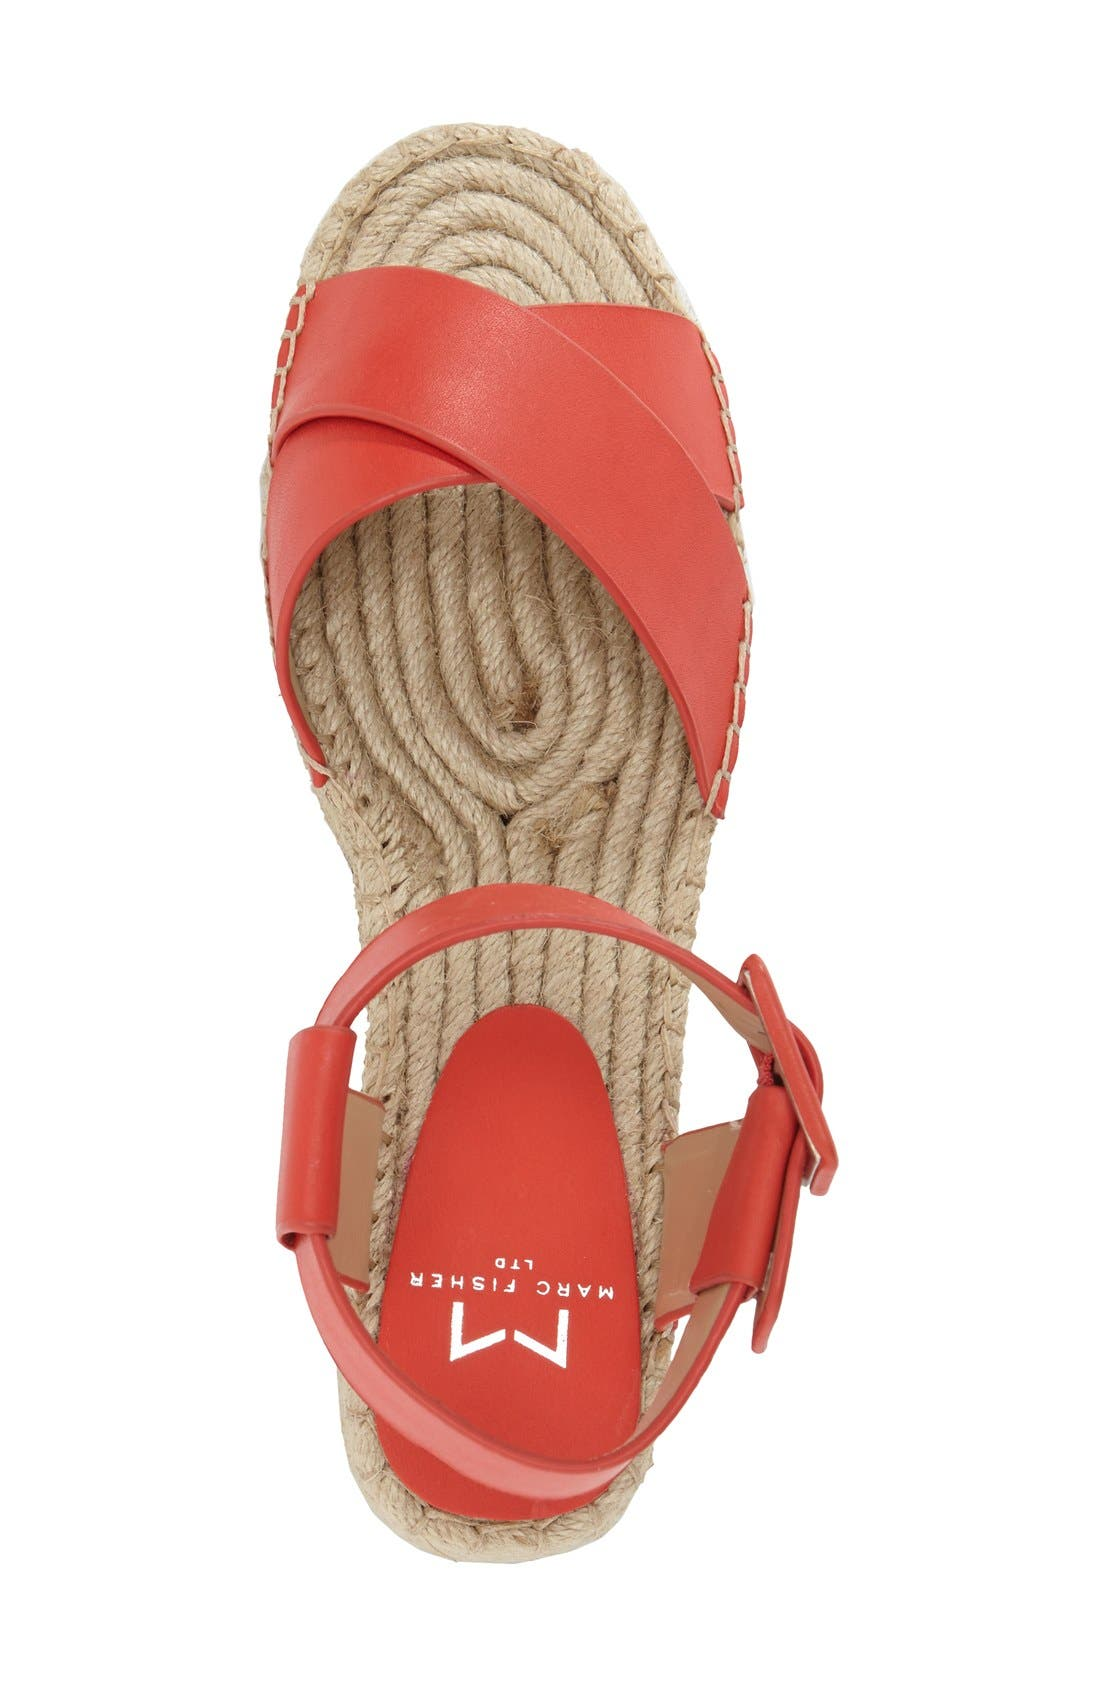 'Vienna' Espadrille Sandal,                             Alternate thumbnail 3, color,                             Red Leather